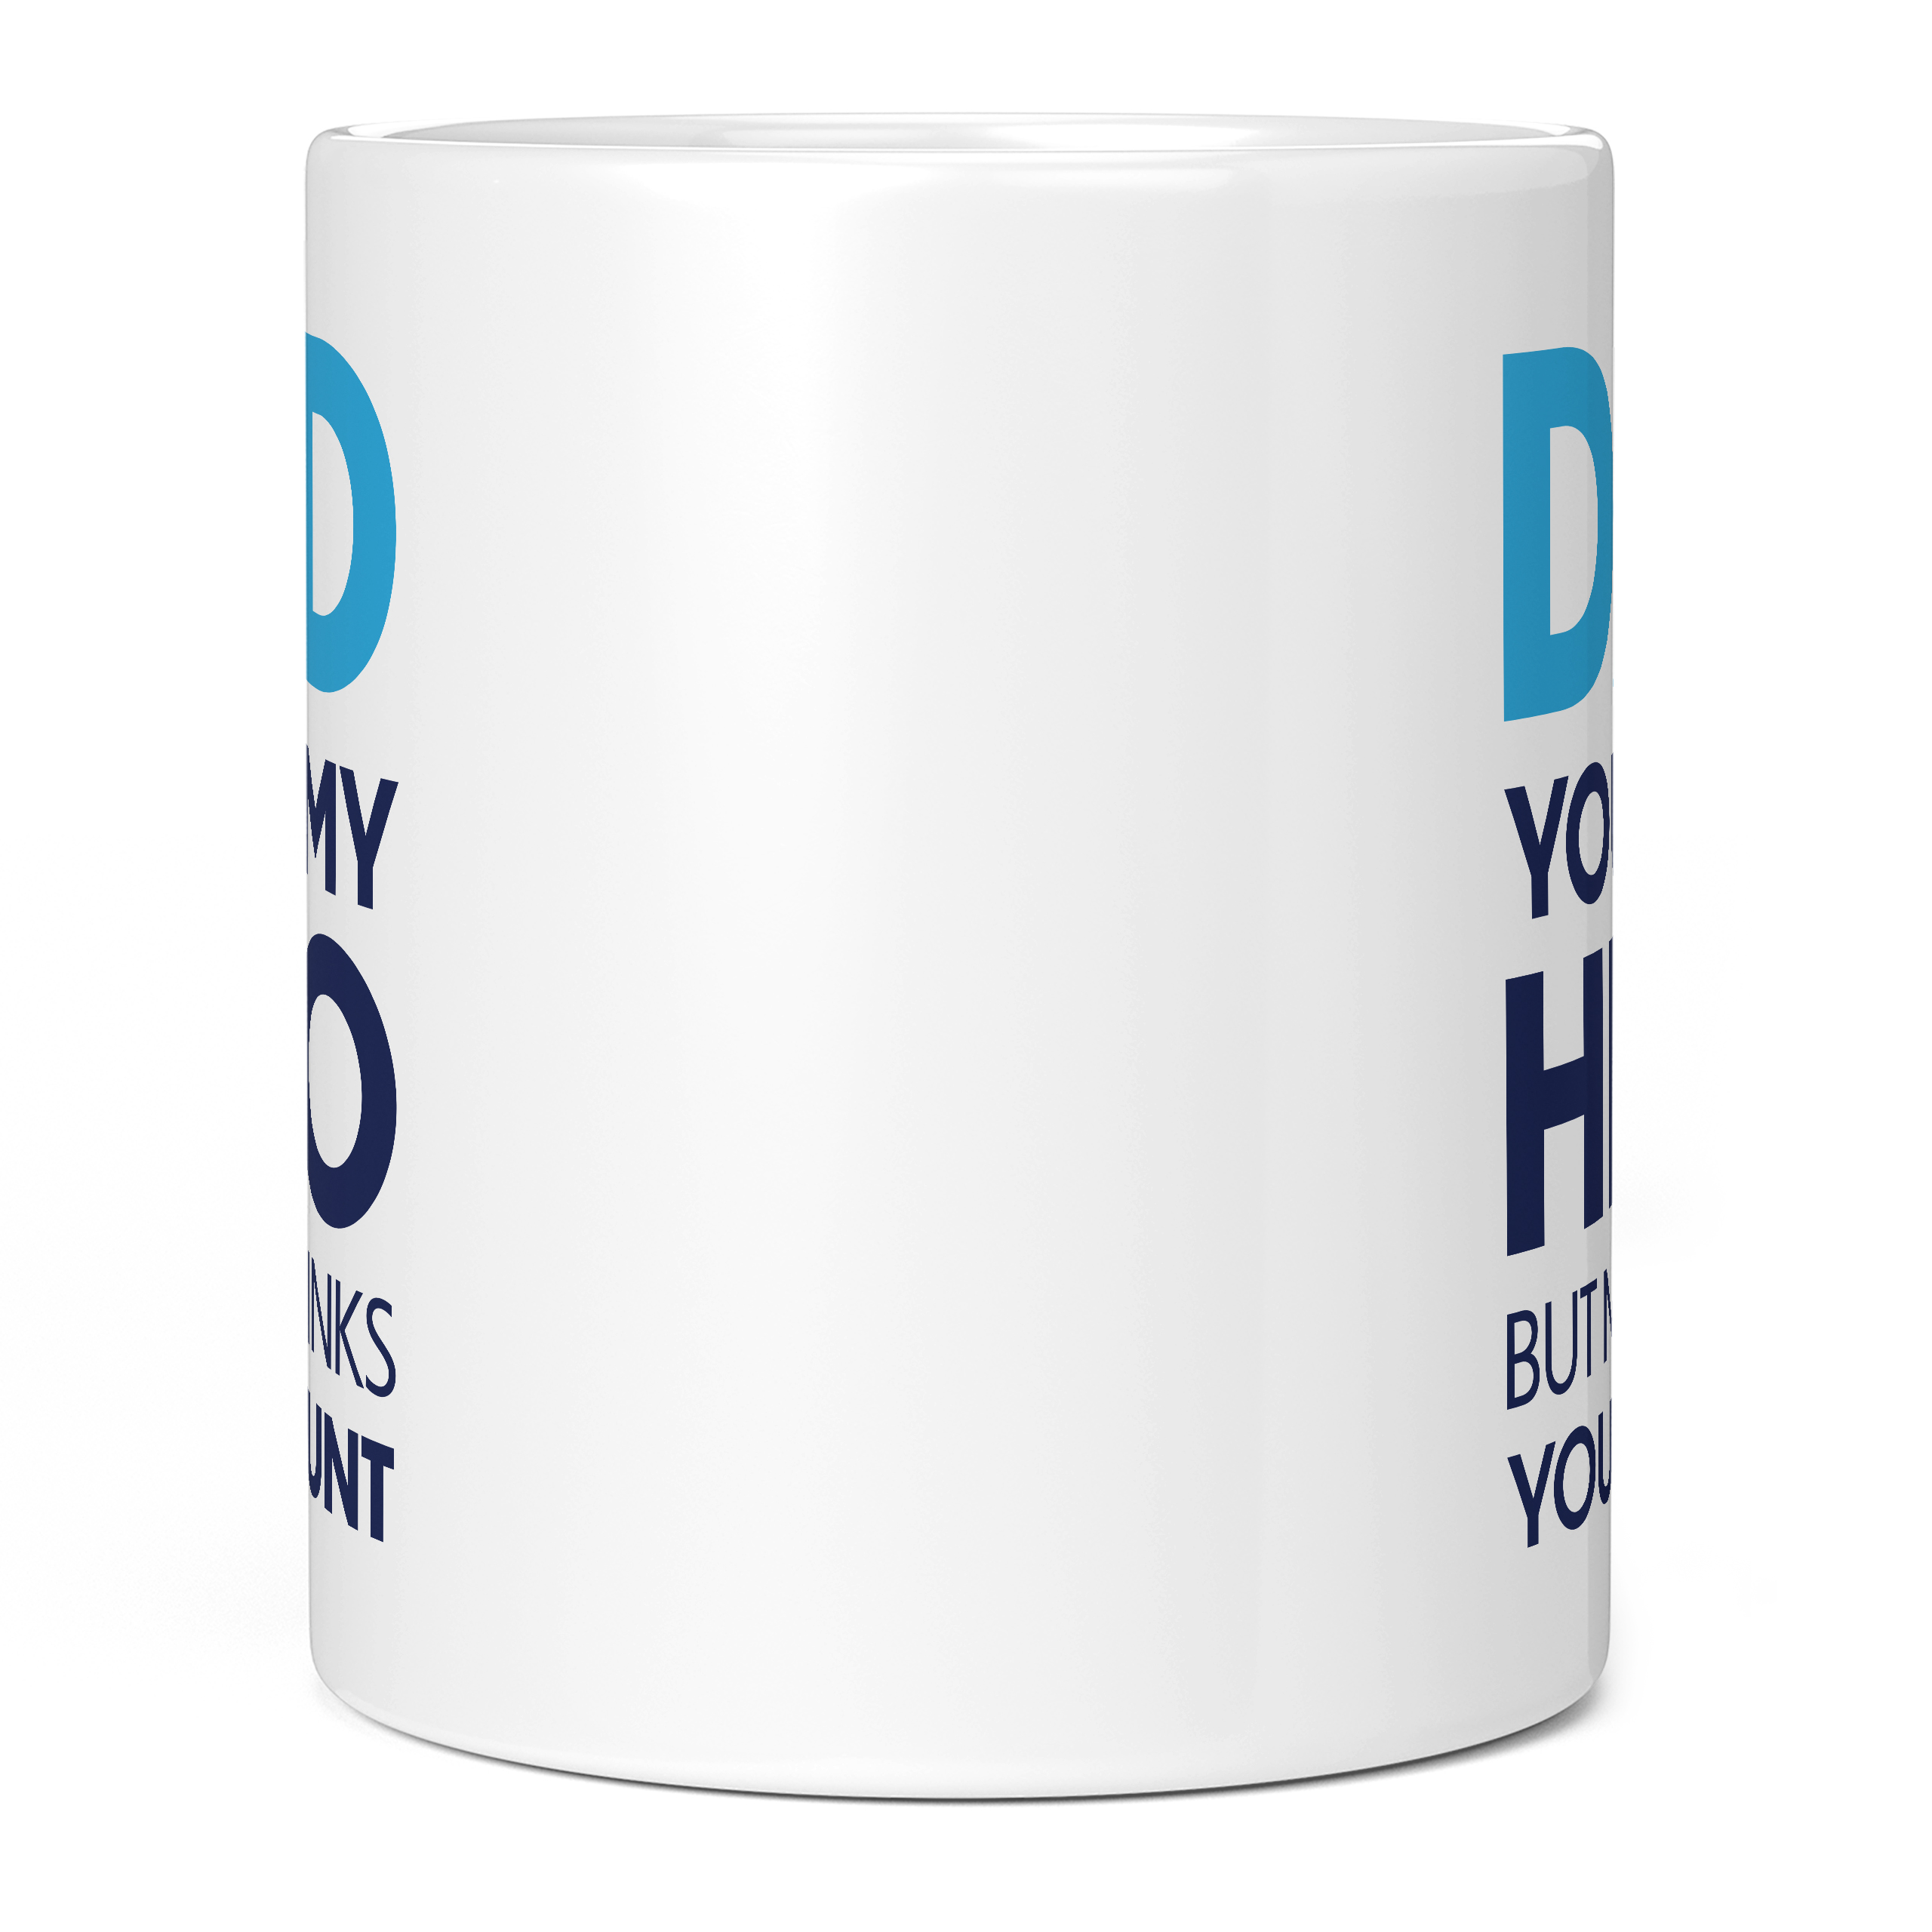 DAD YOU'RE MY HERO ... BUT MOM THINKS YOU'RE A CUNT WHITE 11oz NOVELTY MUG Mugs